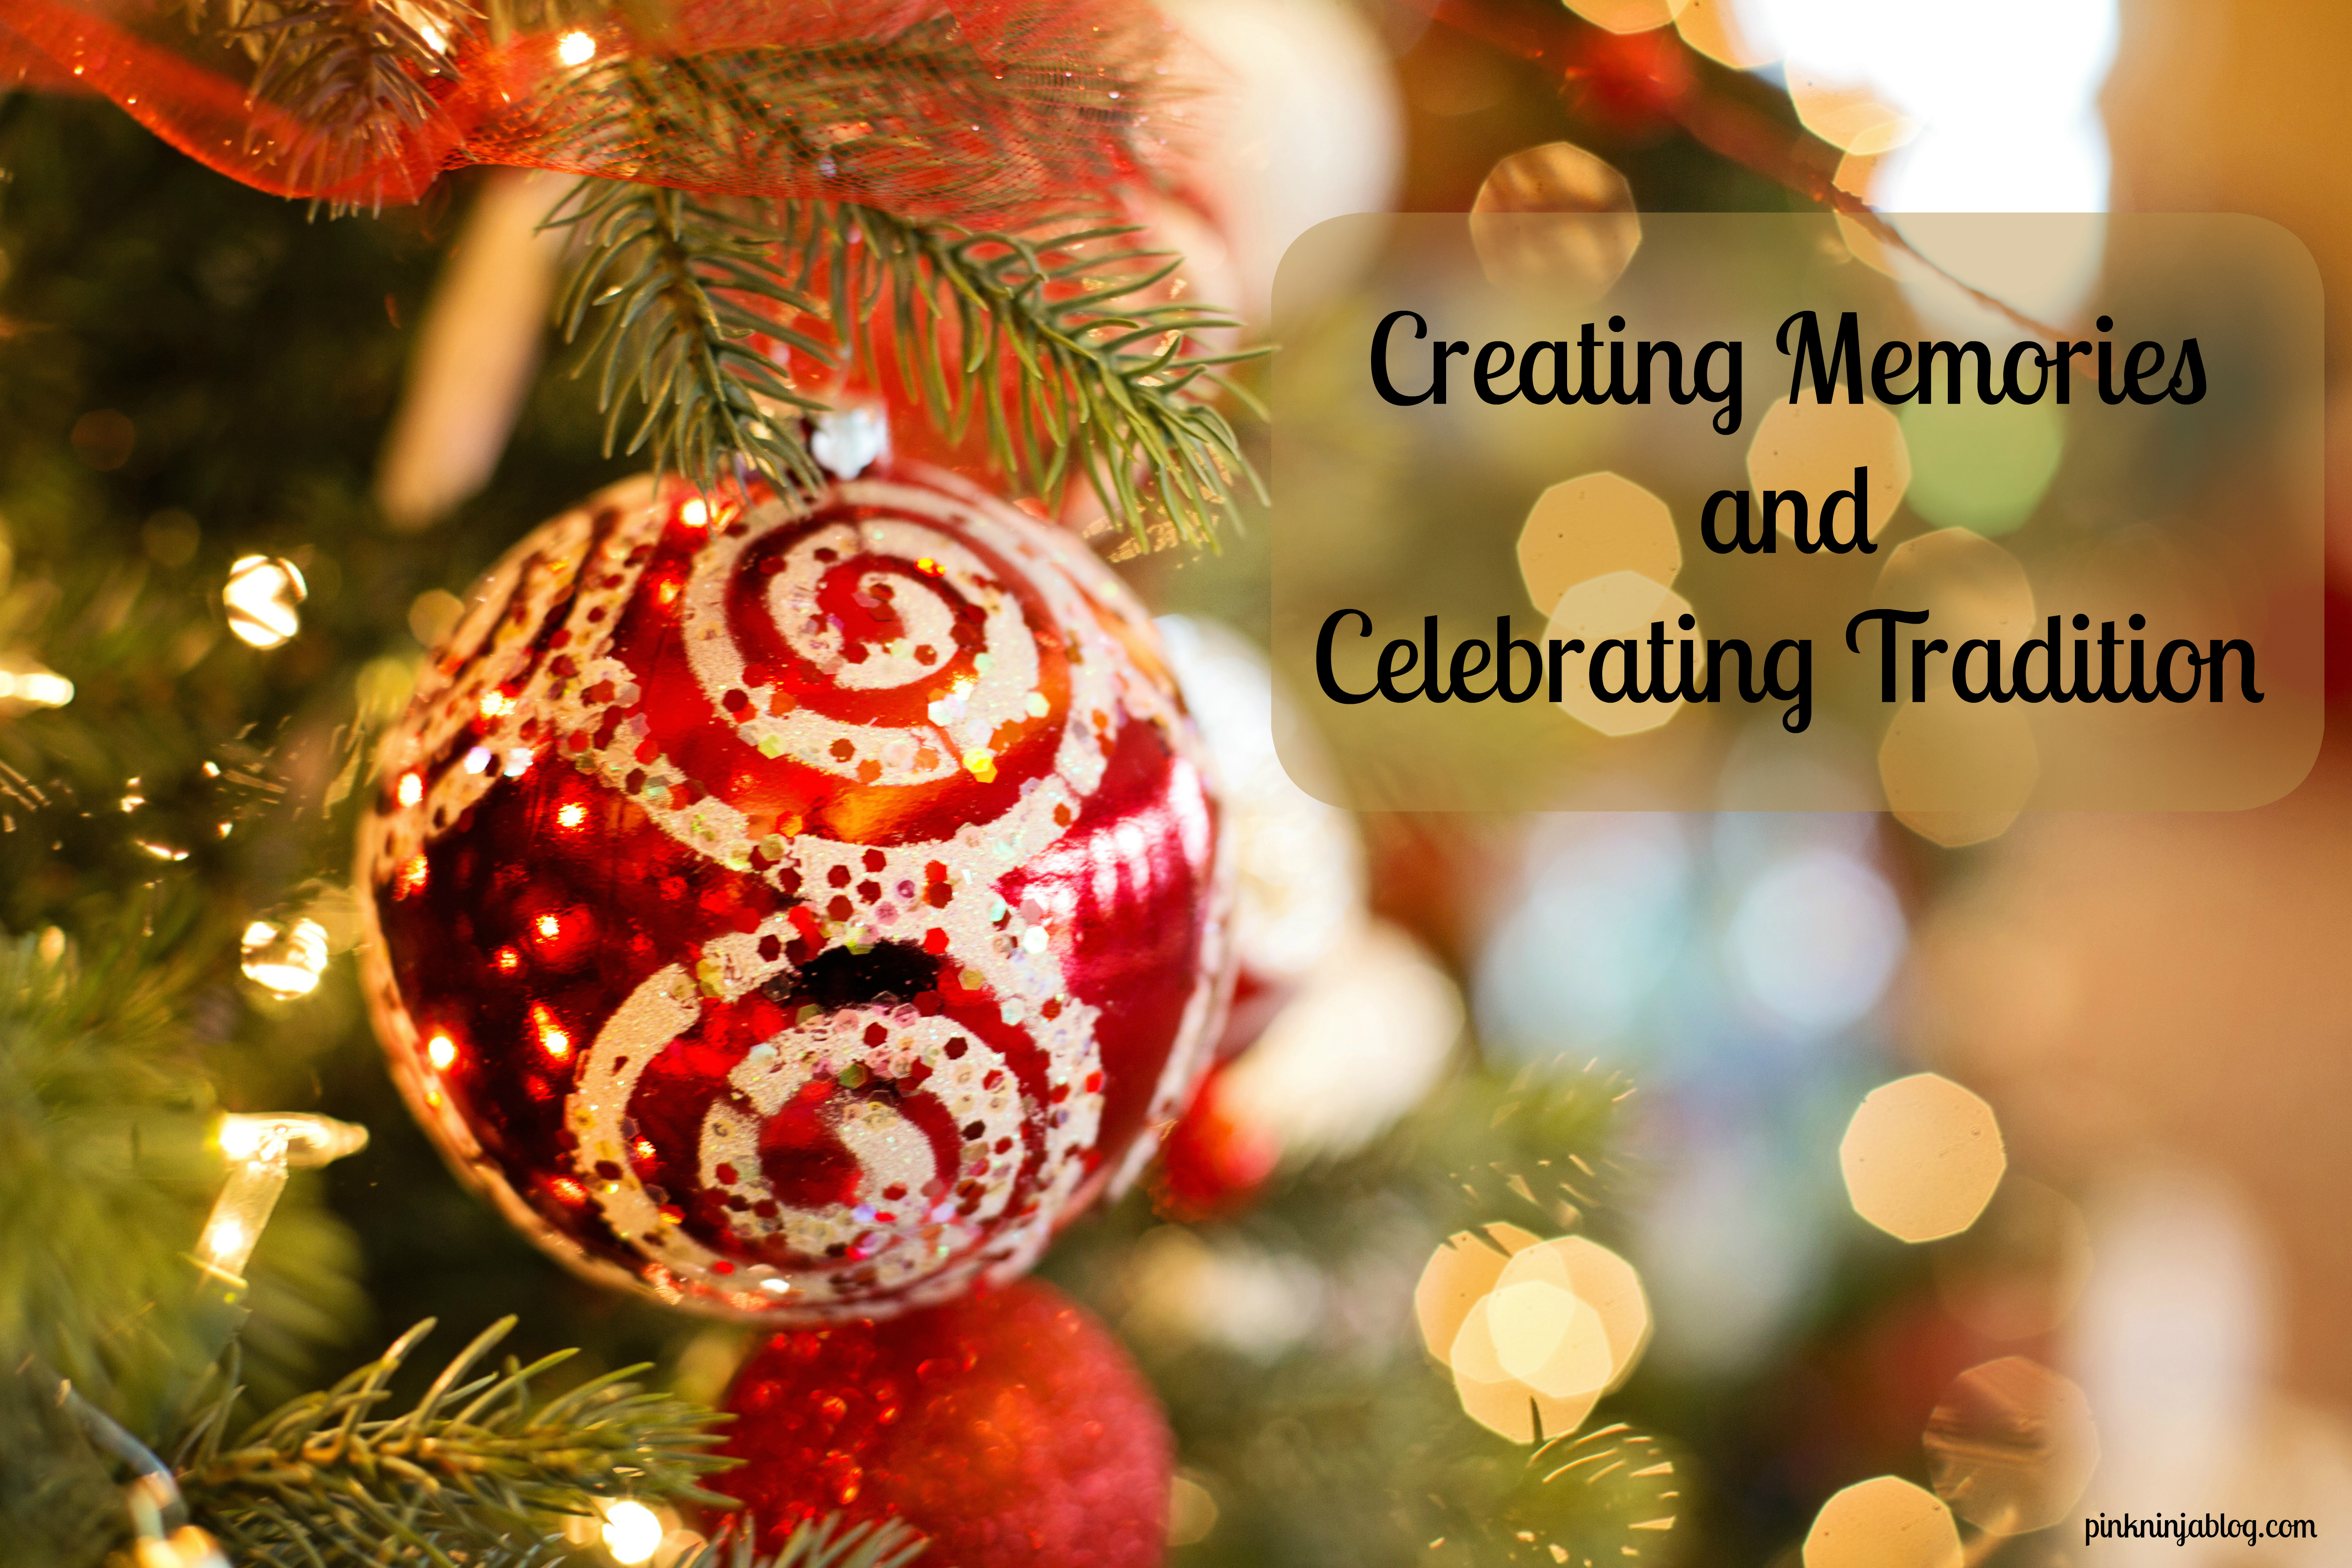 Creating Memories and Celebrating Tradition